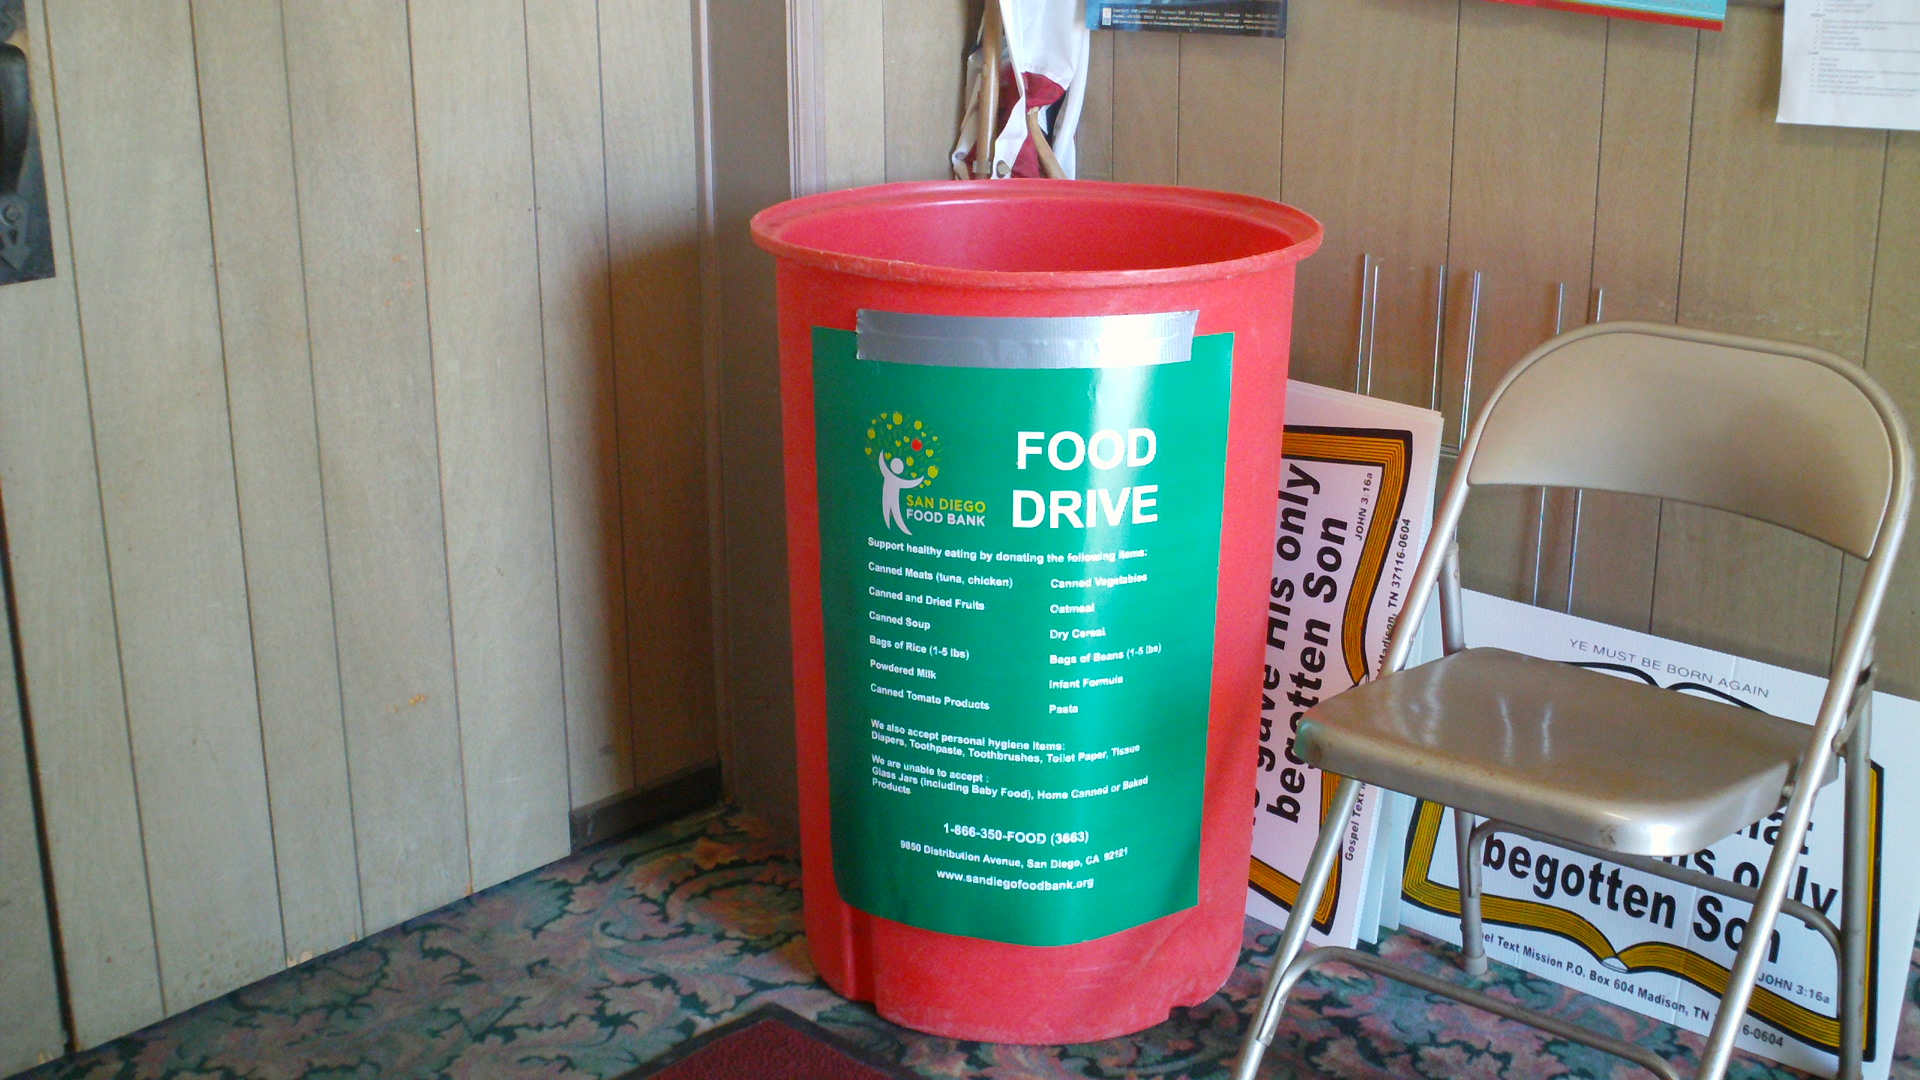 A red bucket for collecting donations for a community food drive.